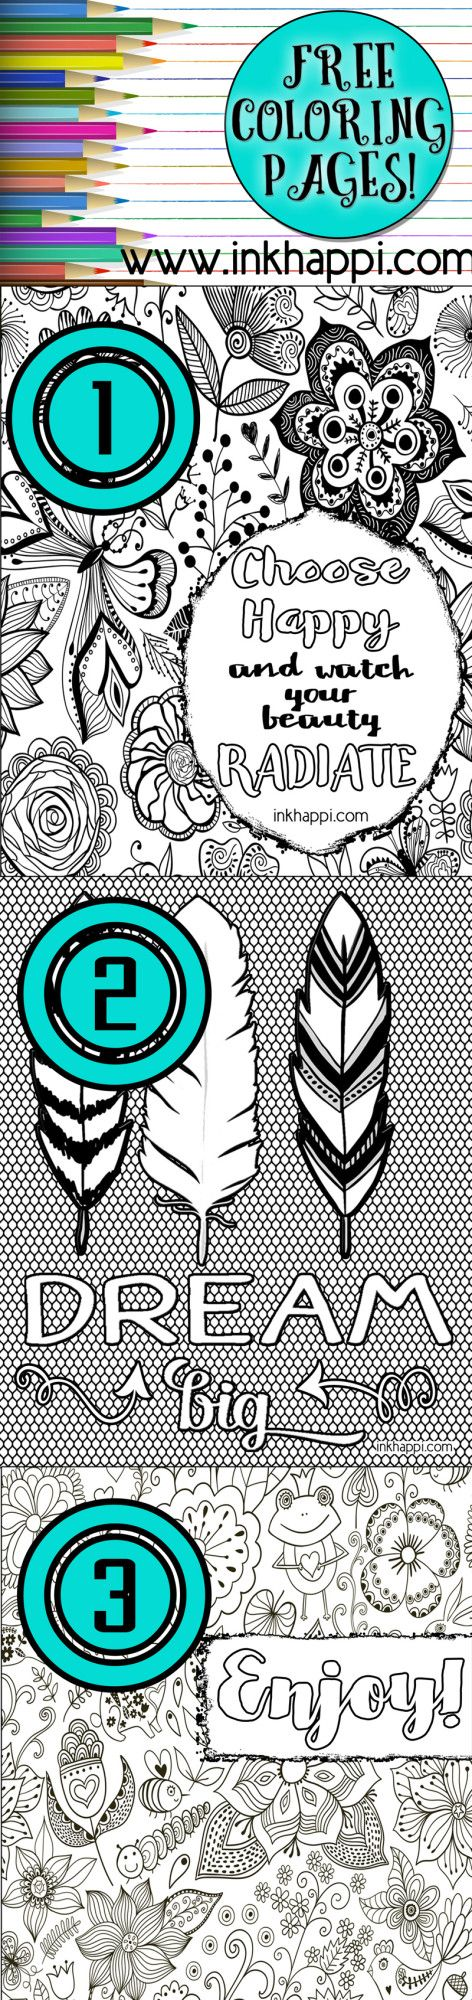 Fun and Inspiring.... Free printable coloring pages! Great for framing.